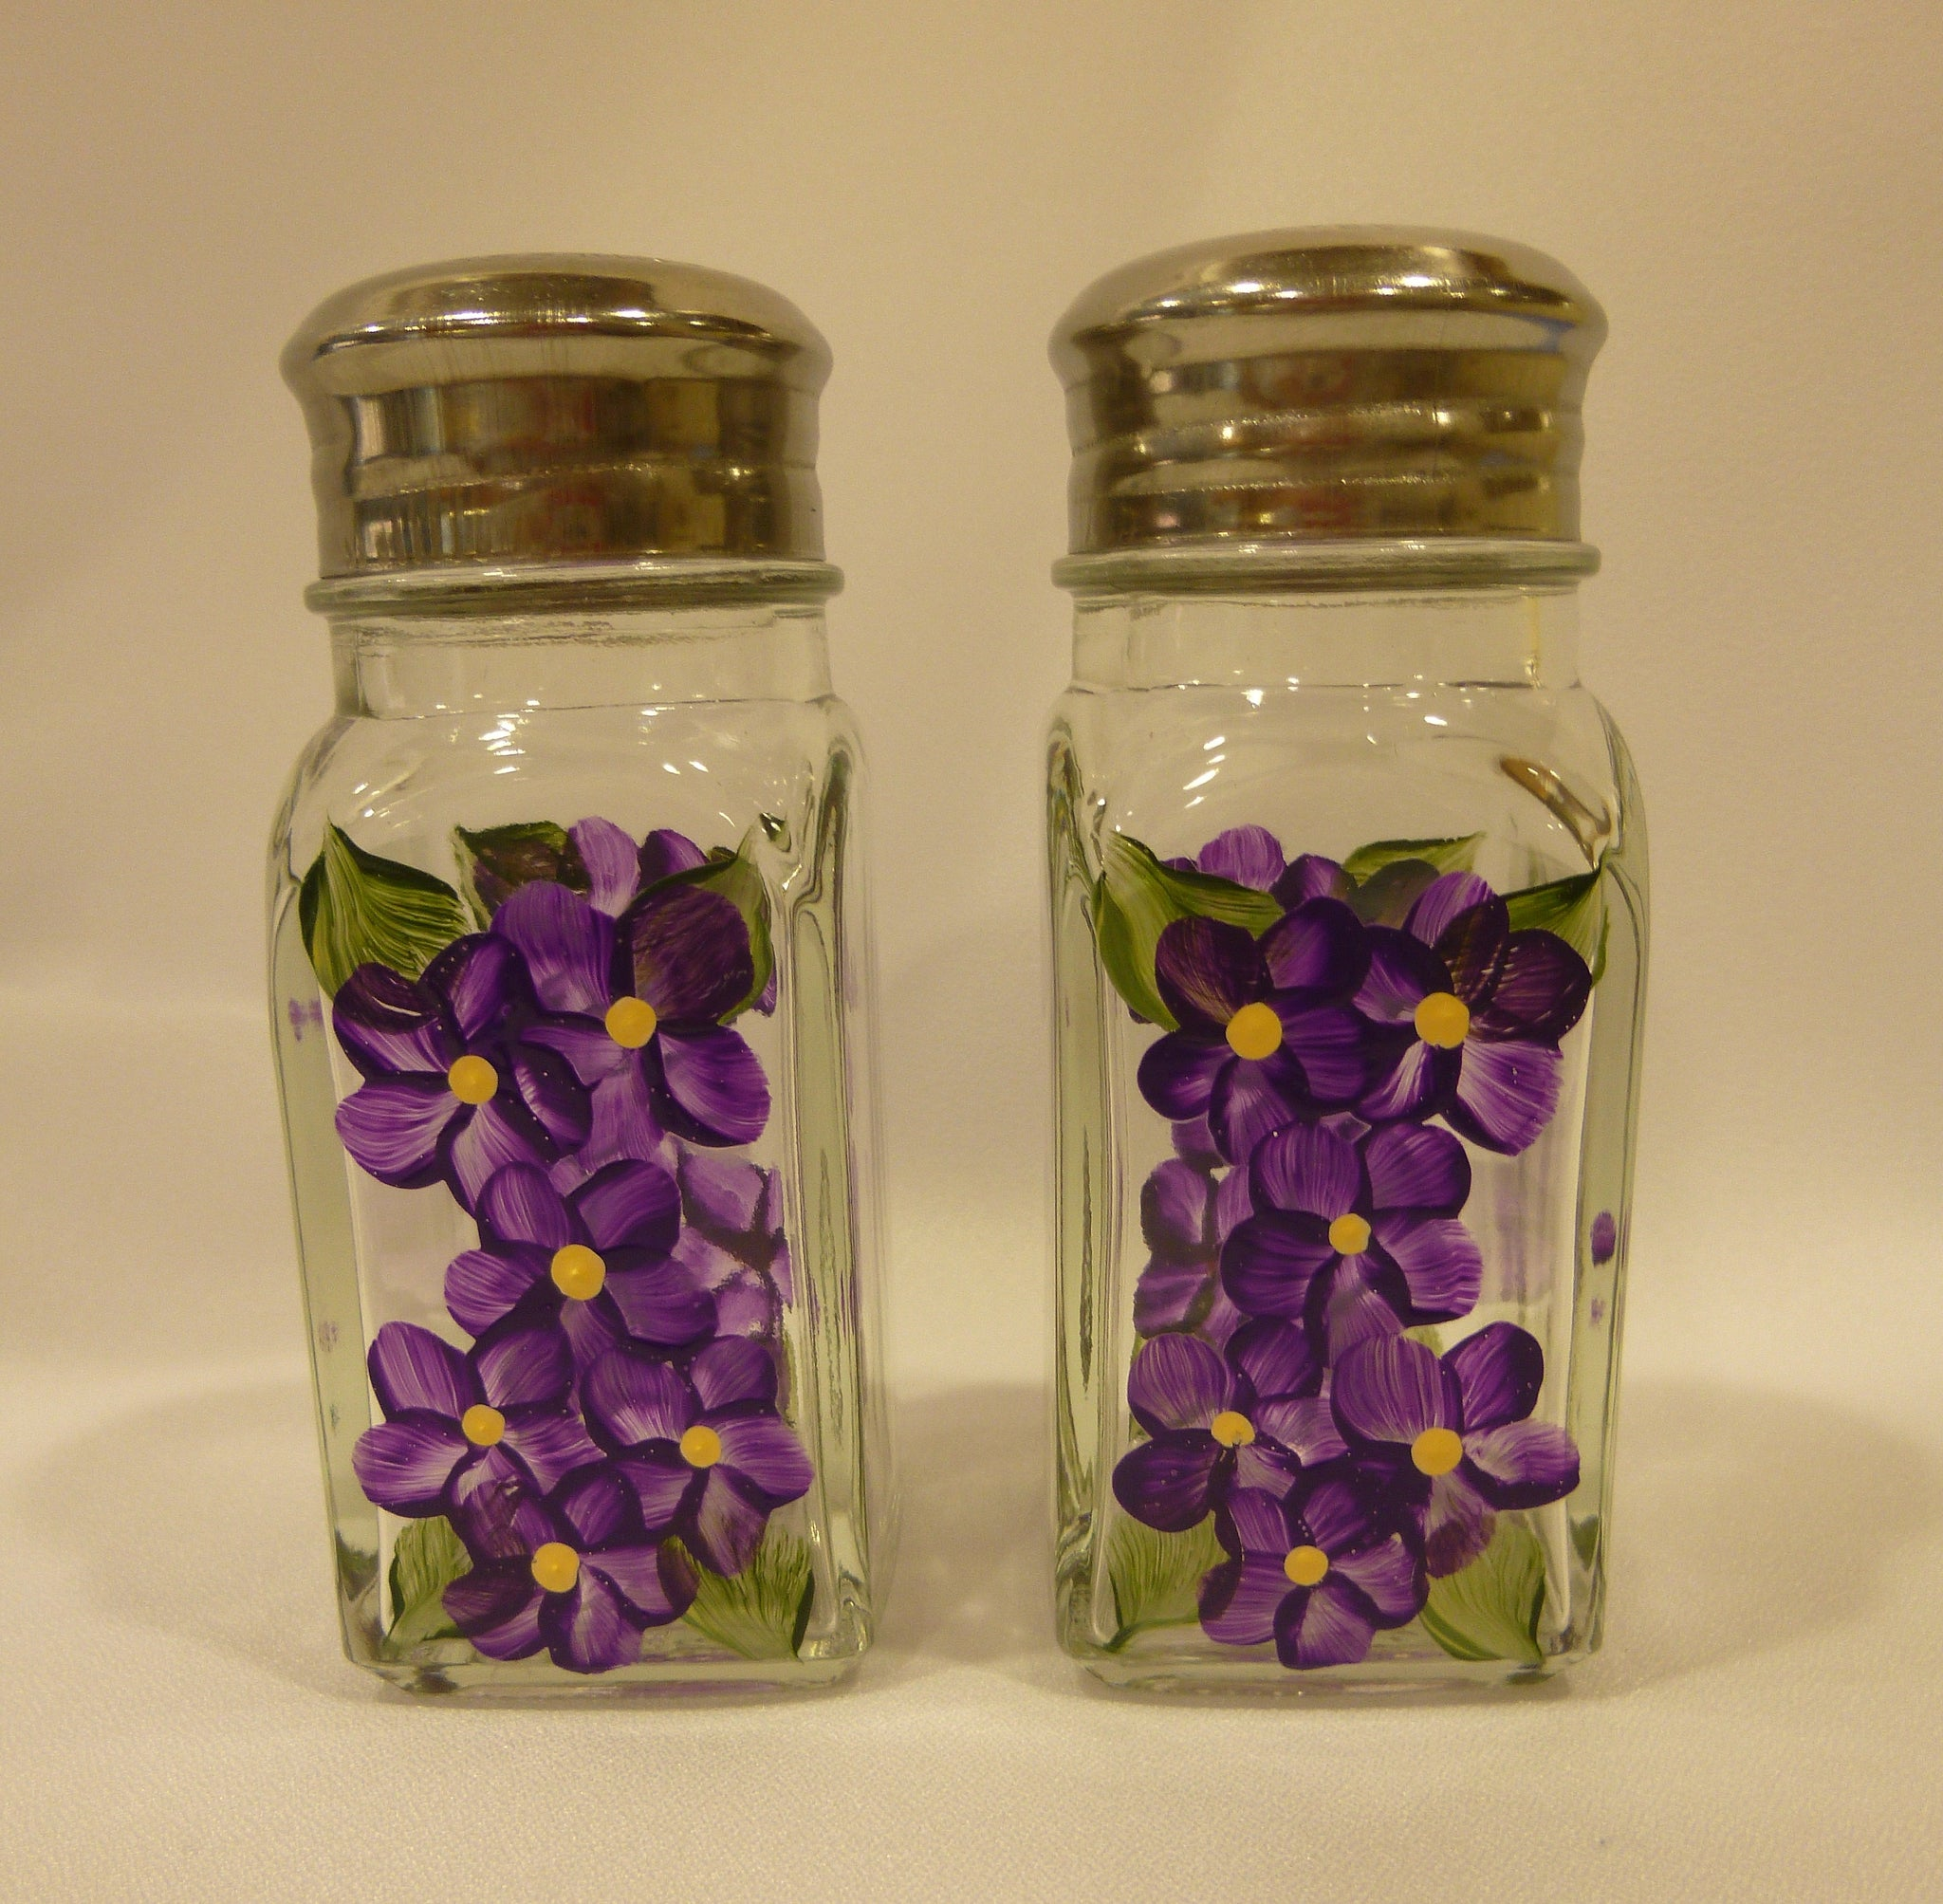 Hand Painted Salt and Pepper Shakers - Lavender Flowers